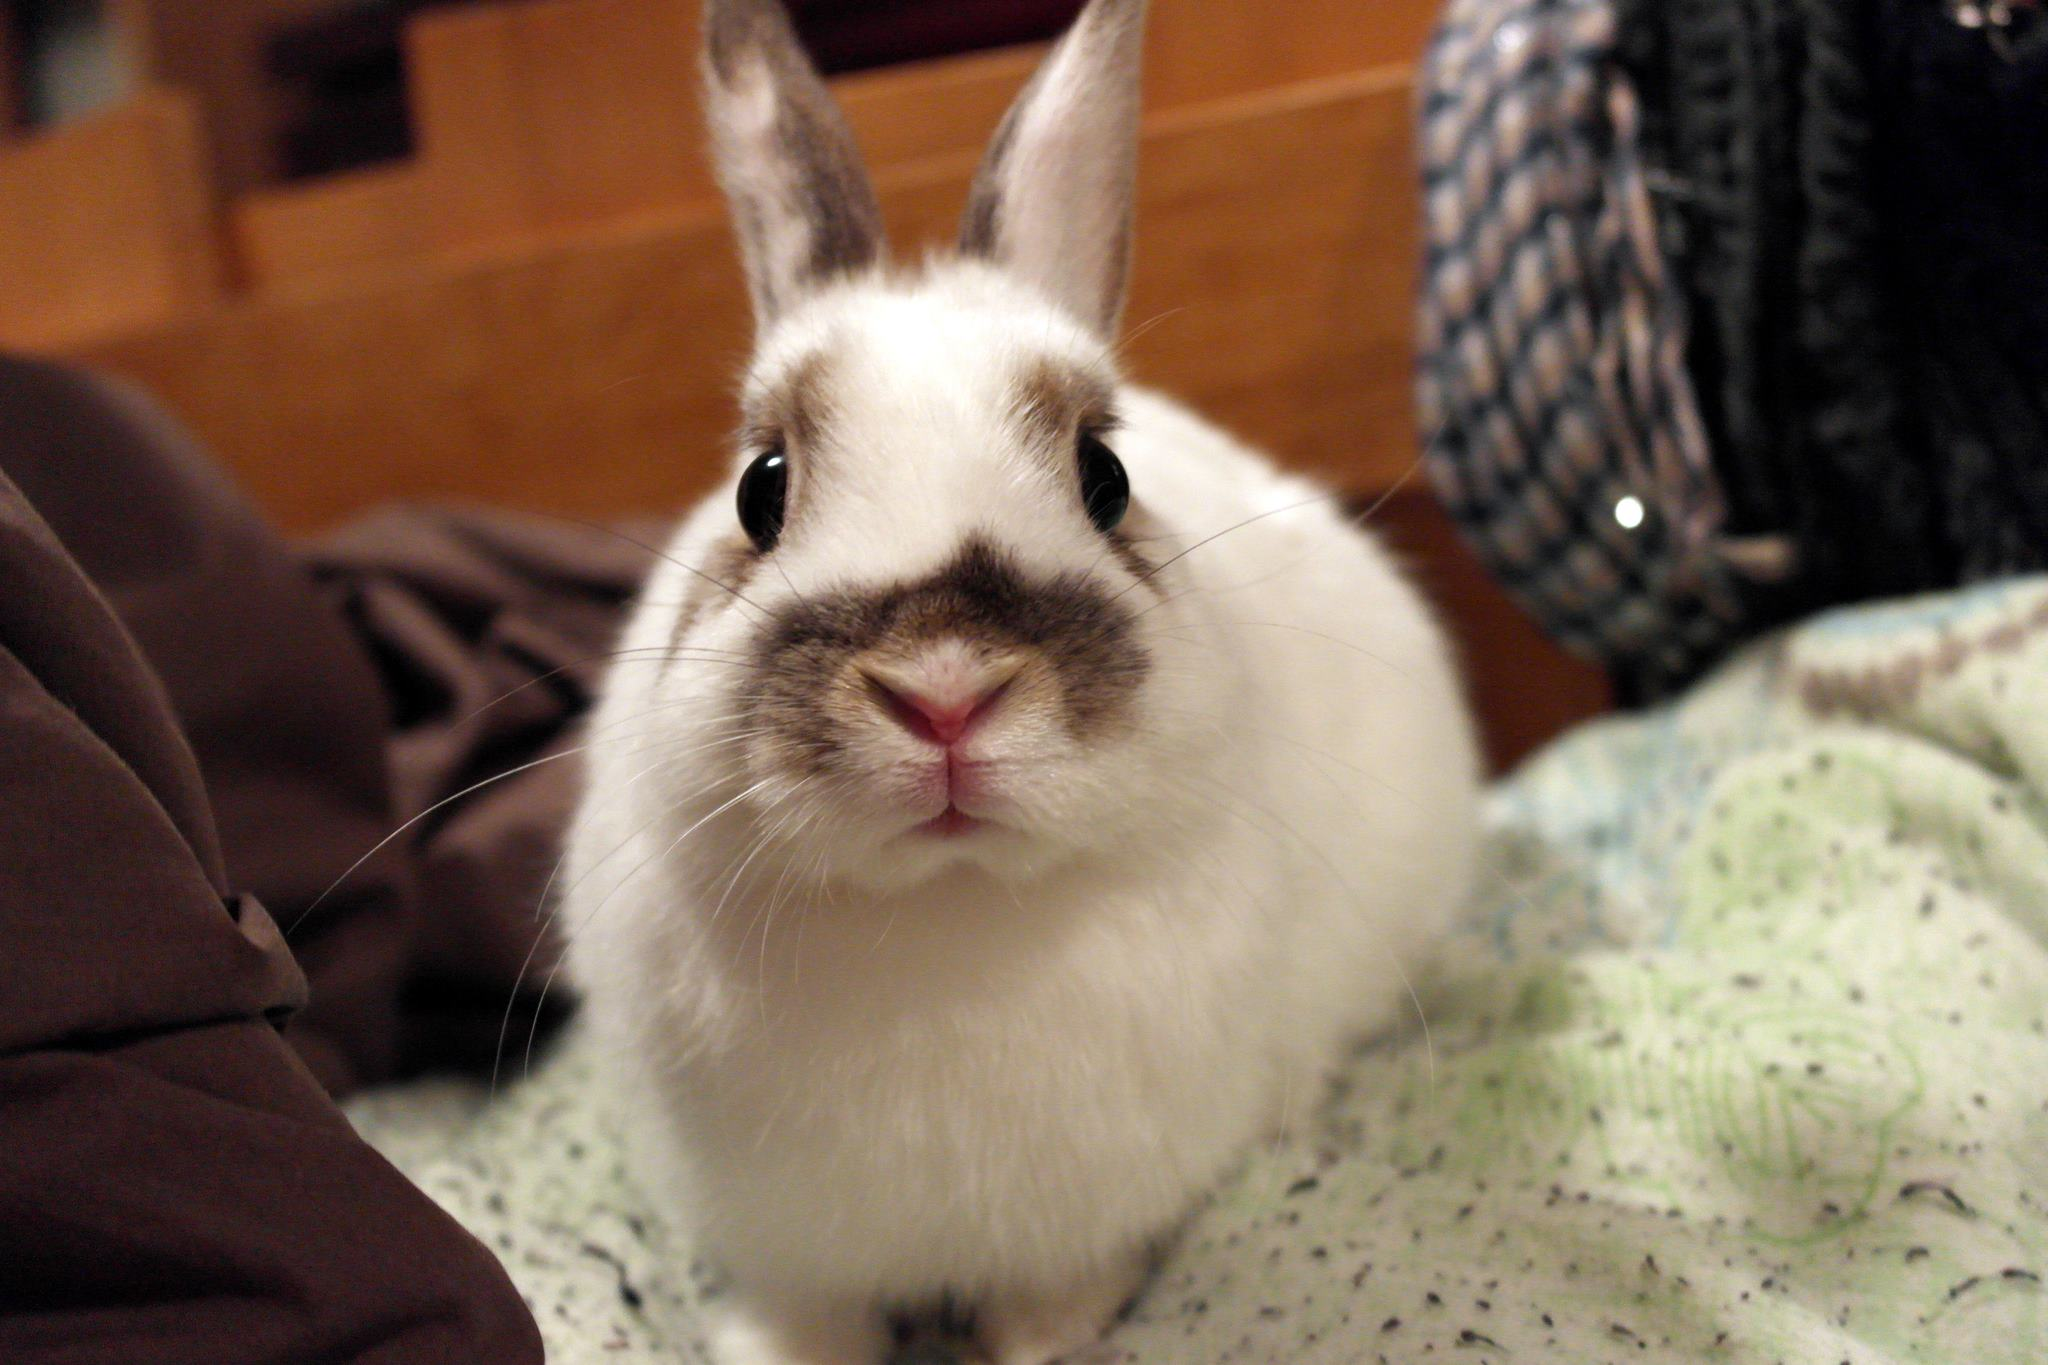 It's a Bunny vs. Human Staredown - First One to Blink Has to Fetch Greens for the Winner